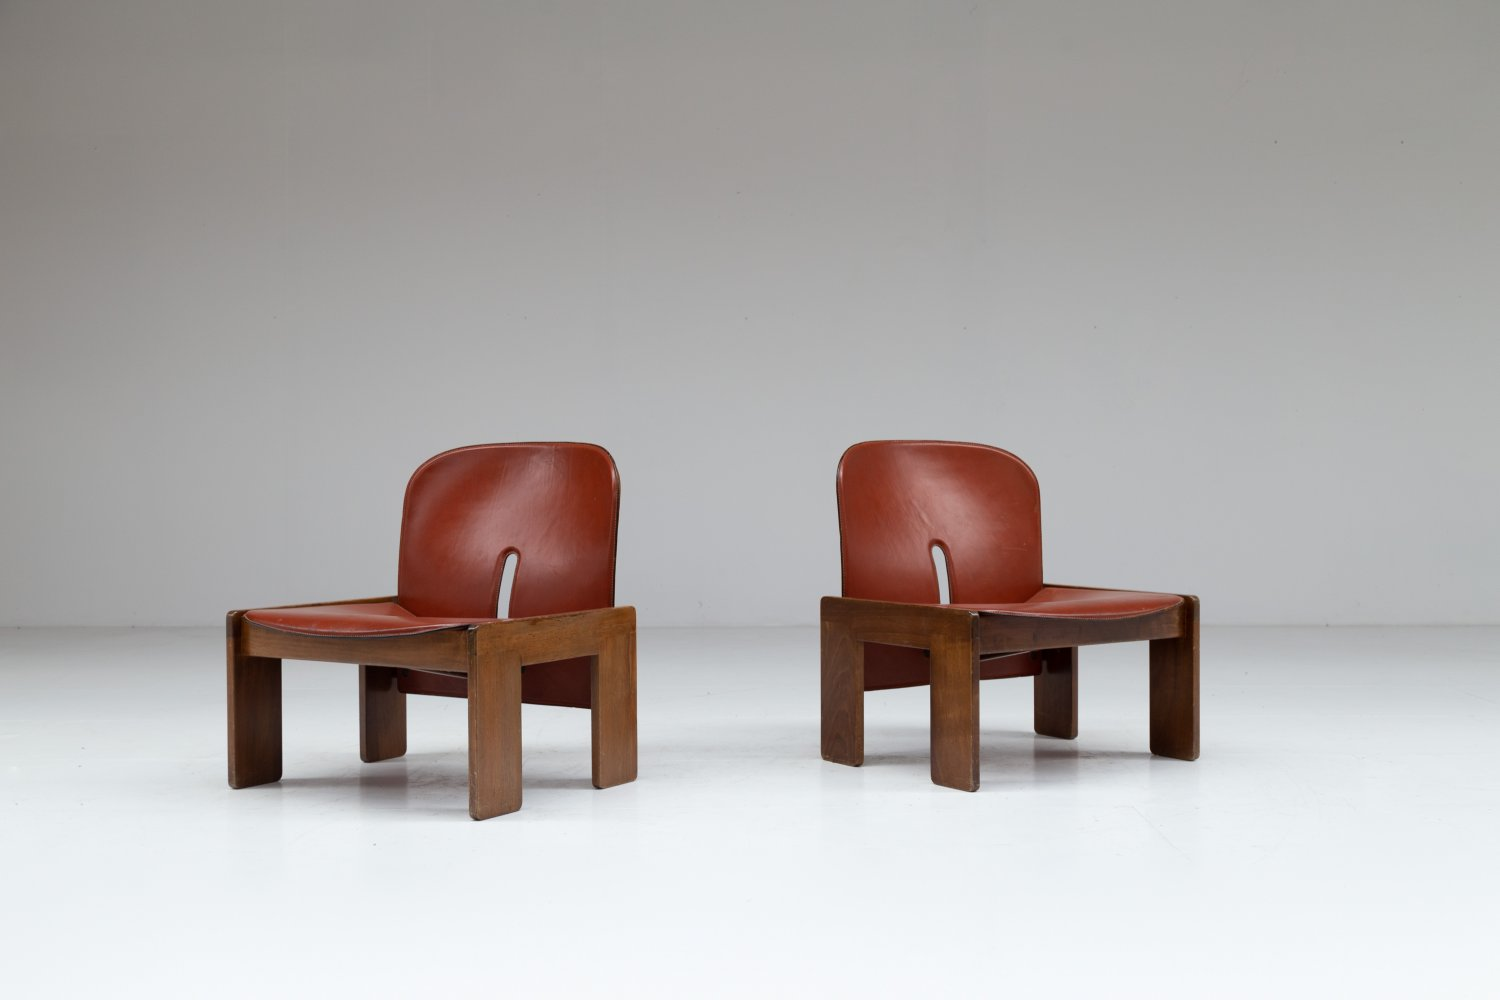 Pair of 925 low chairs by Afra & Tobia Scarpa for Cassina